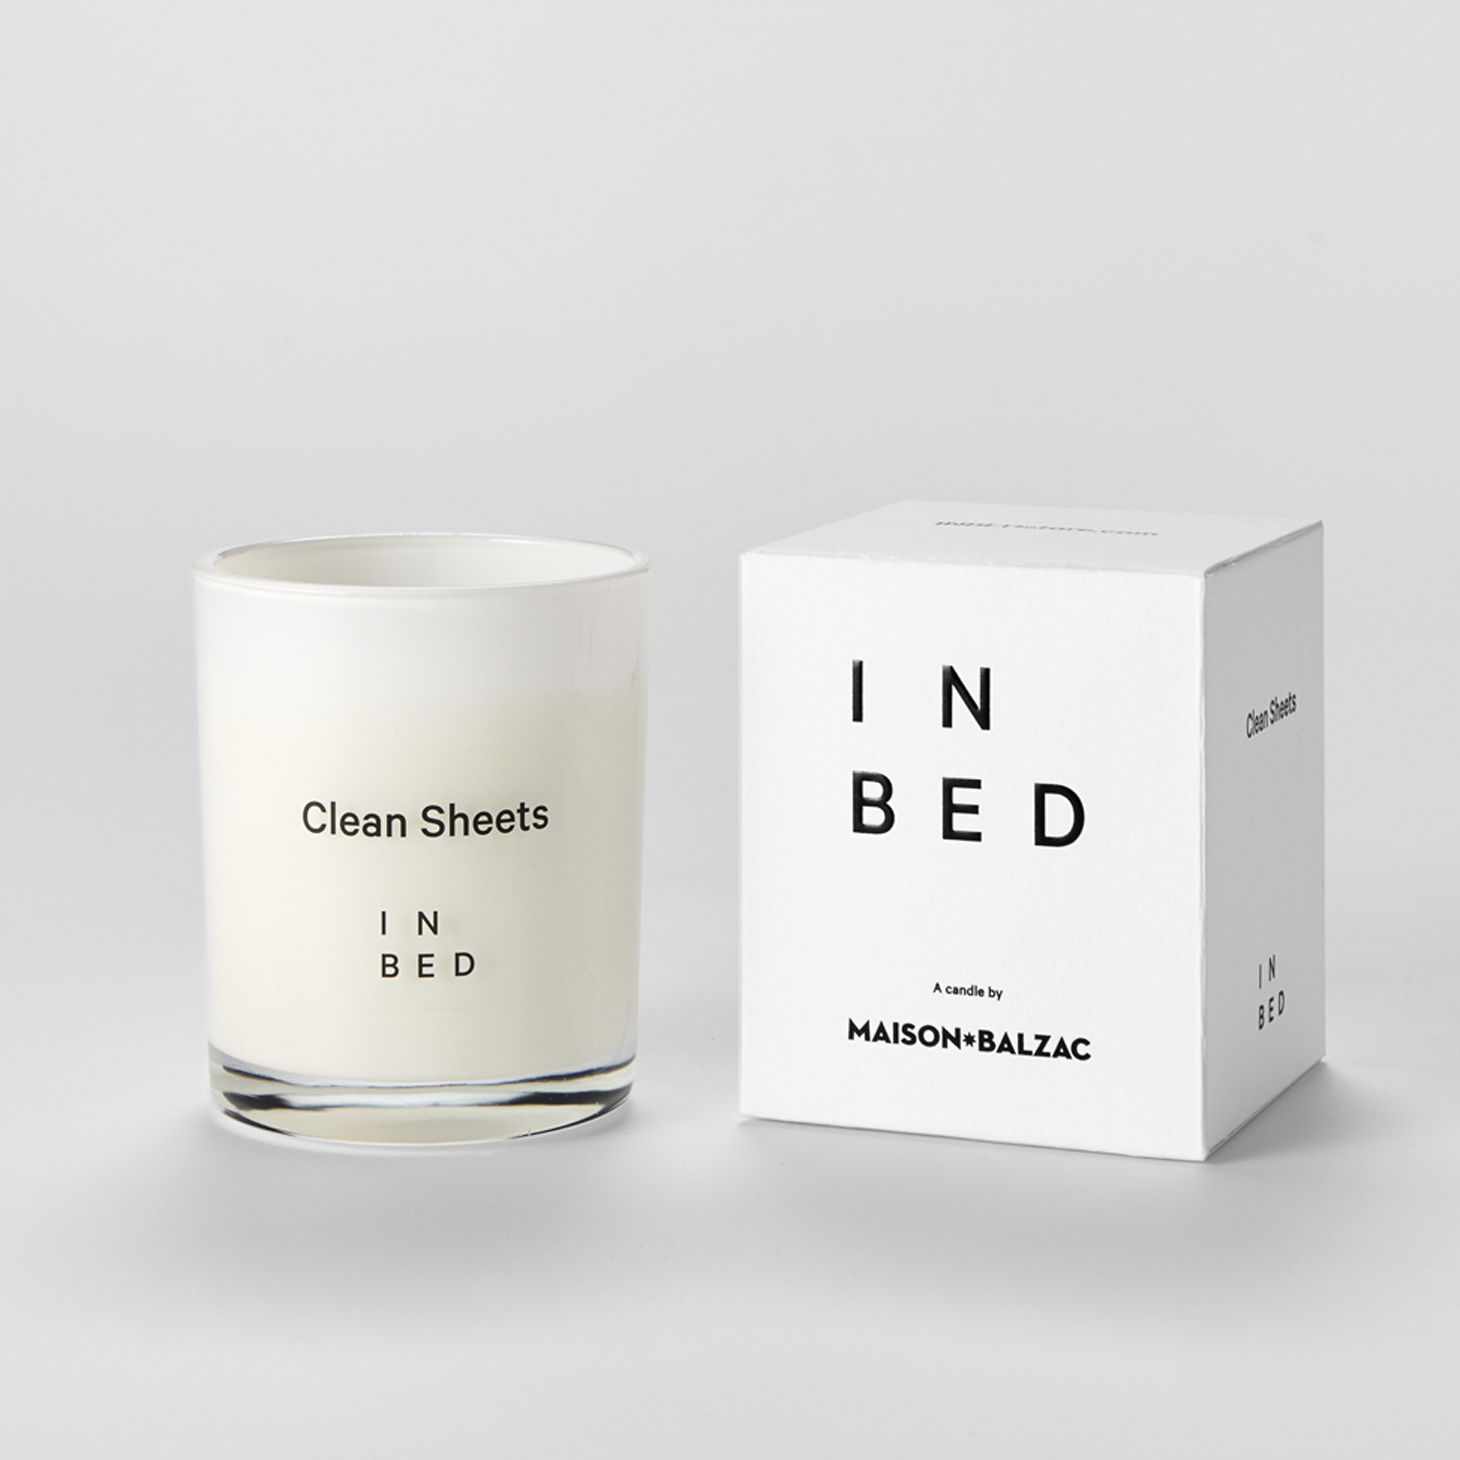 Linen Wedding Anniversary Gifts, In Bed Clean Sheets Candle